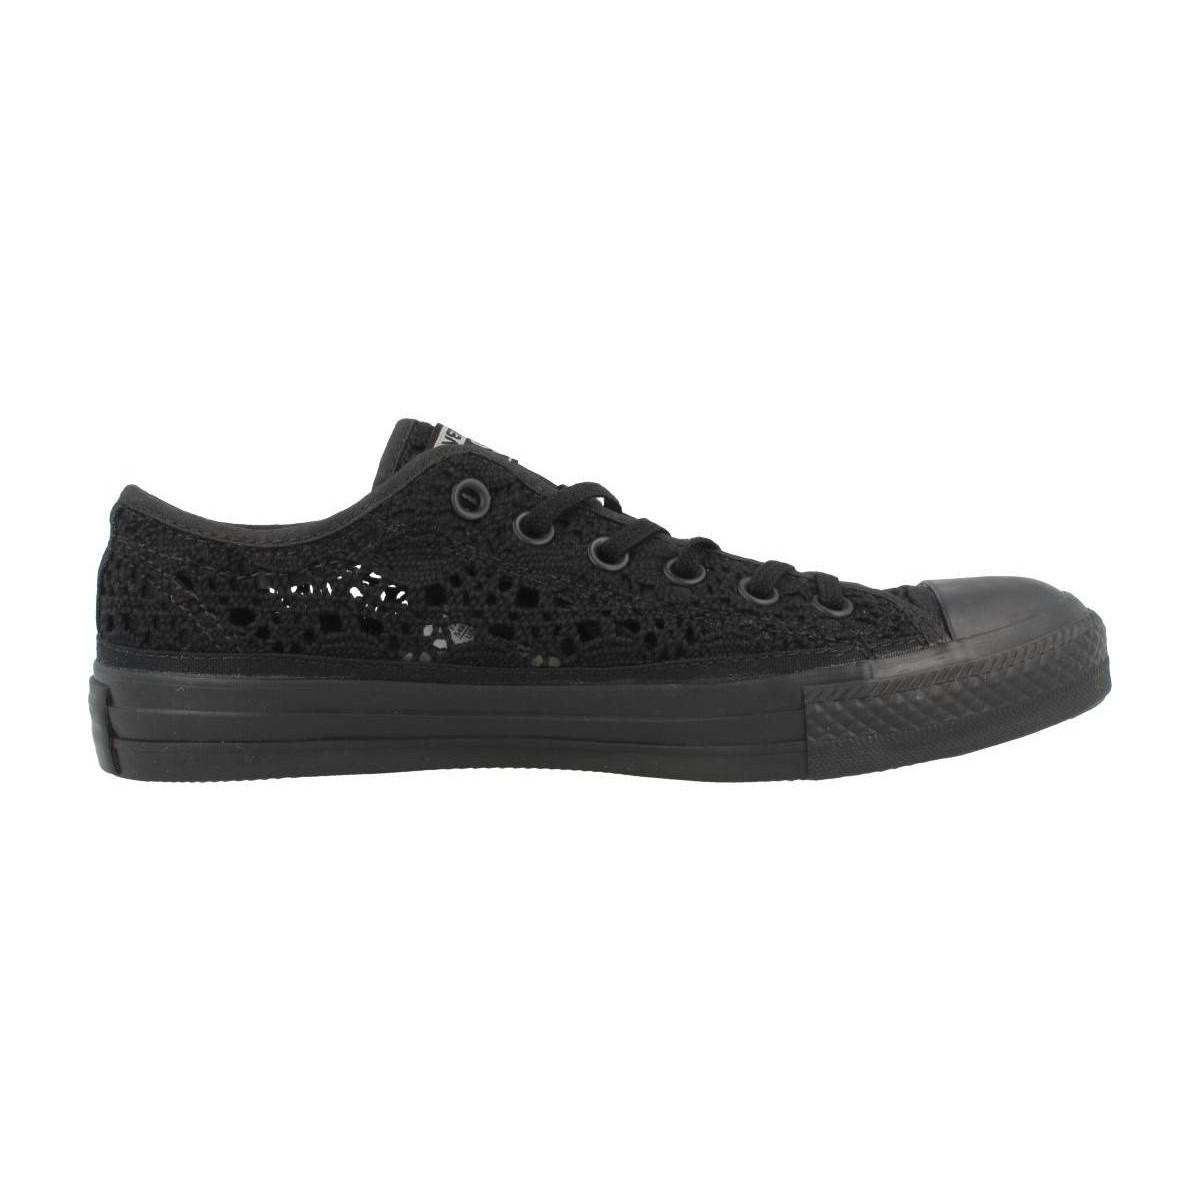 45f392488d0790 Converse Ct Specialty Ox Women s Shoes (trainers) In Black in Black ...